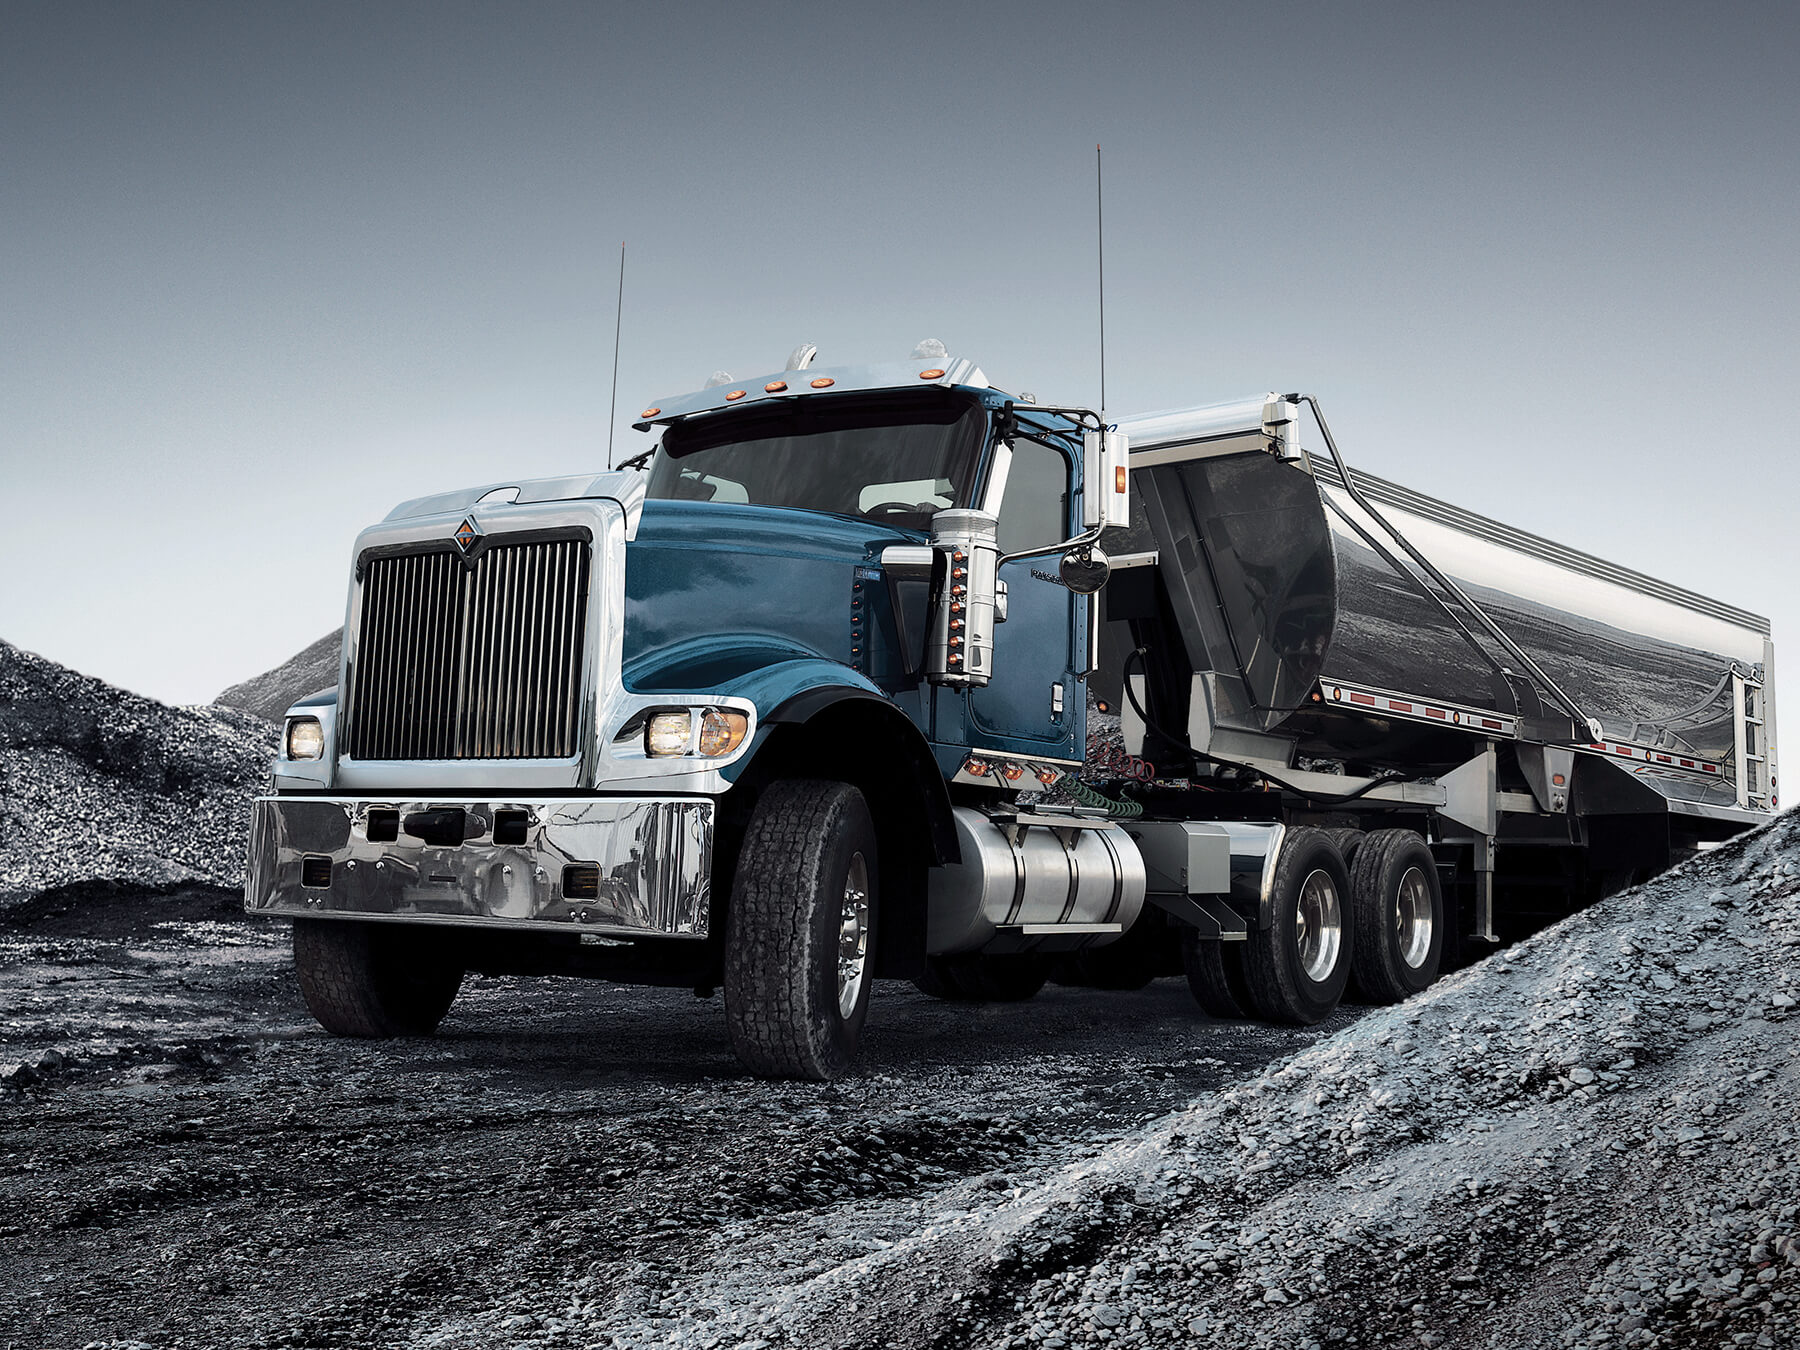 Blue international diesel truck in the grey dirt